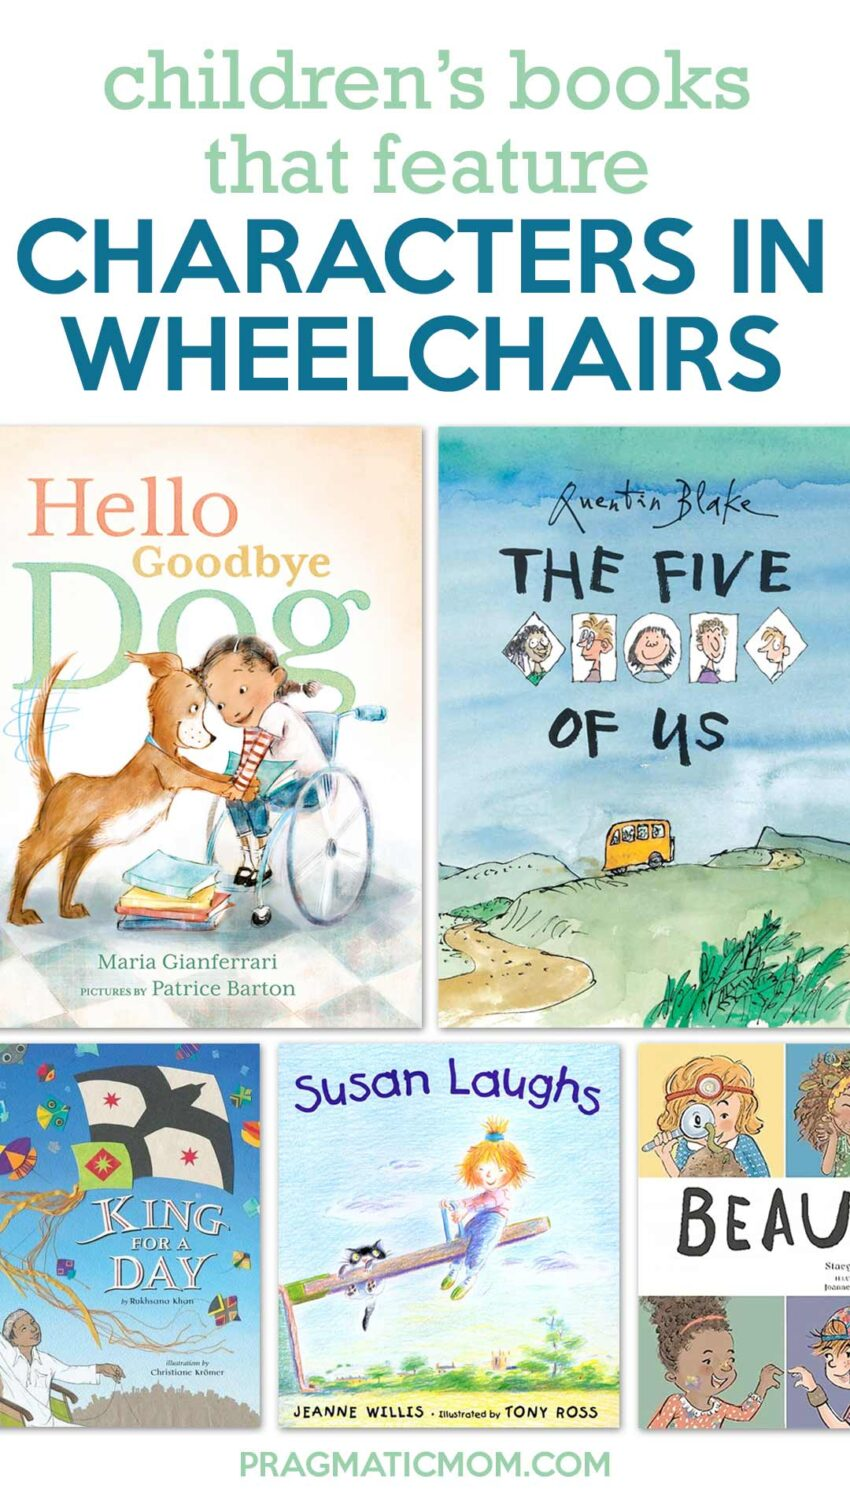 Children's Books that Feature Characters in Wheelchairs